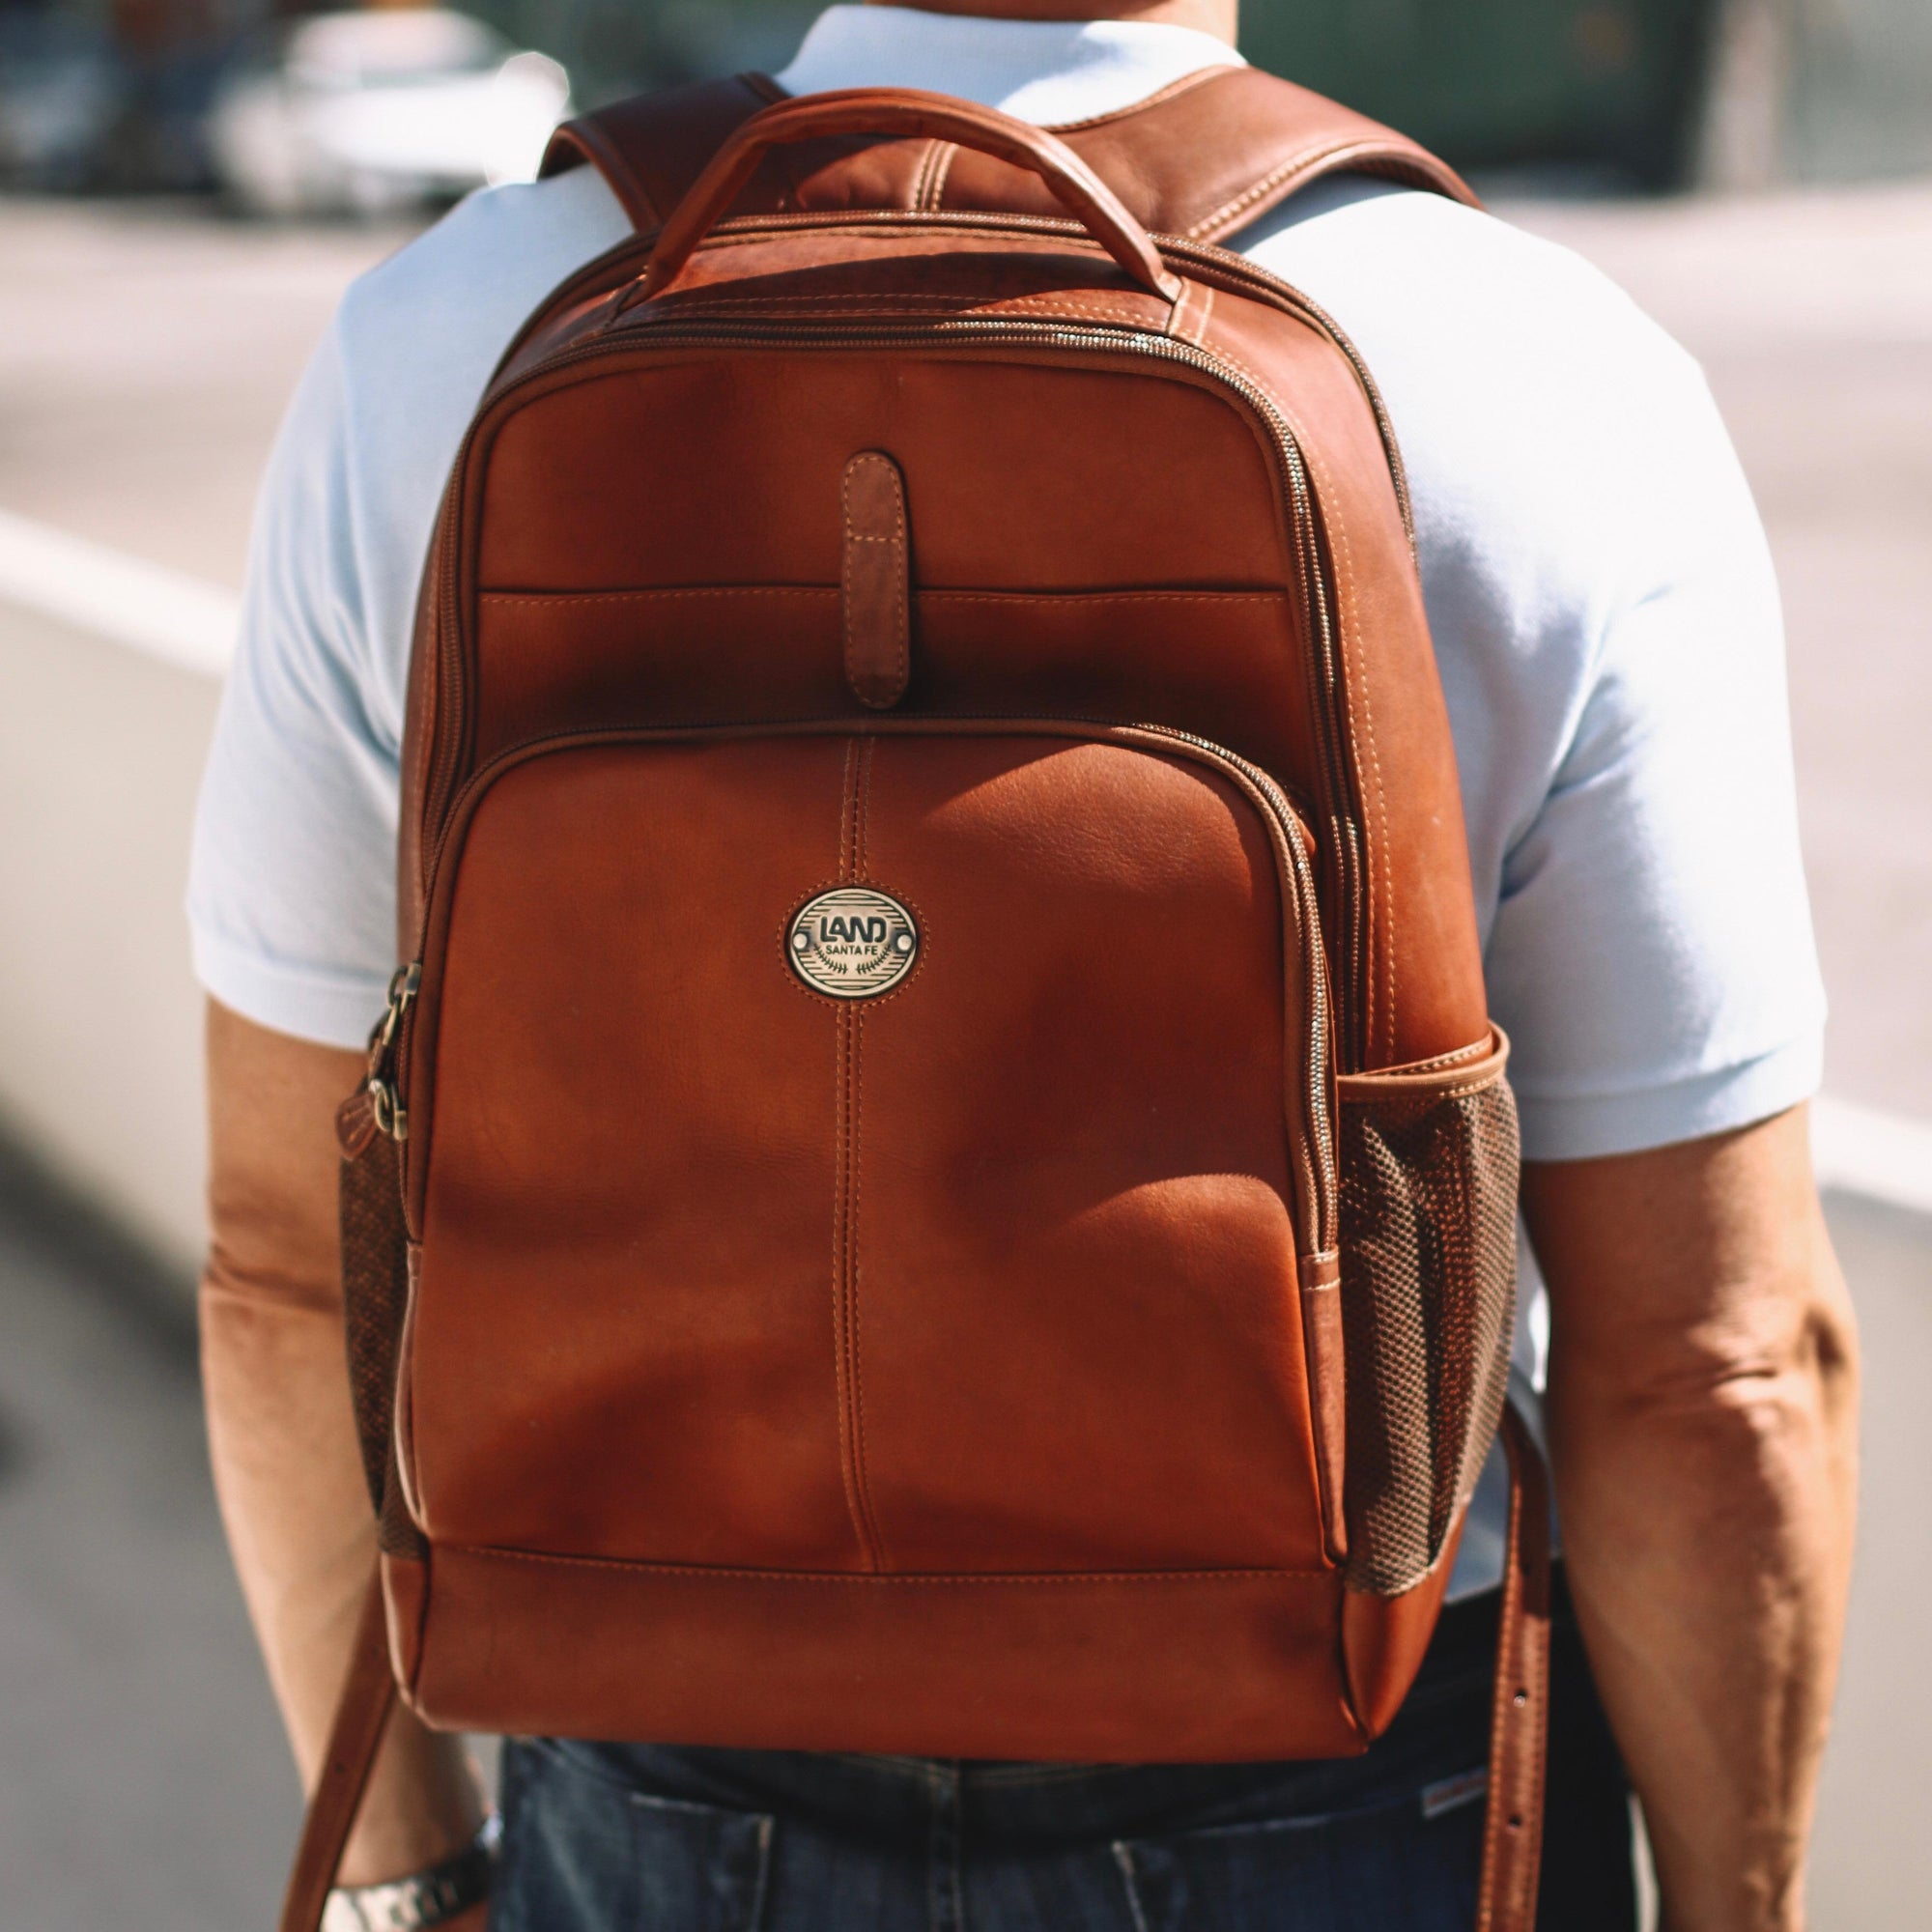 Santa Fe Odyssey Backpack, Backpack | LAND Leather